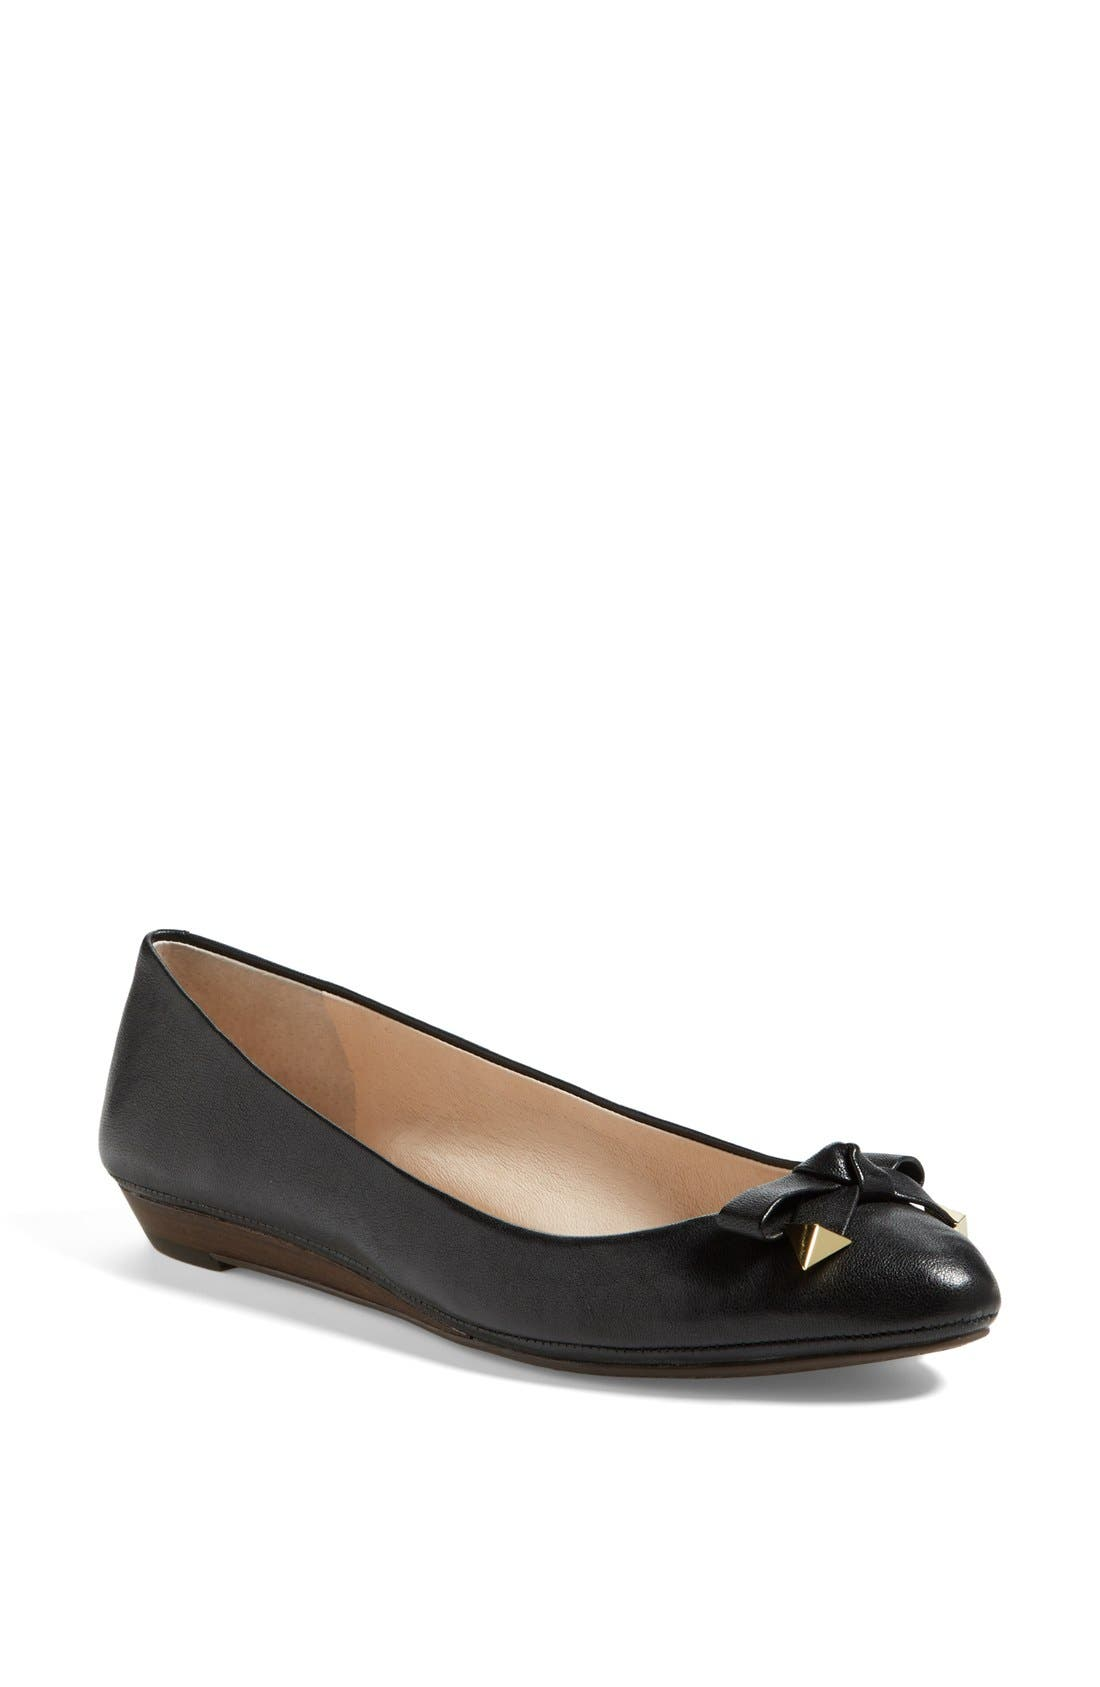 Alternate Image 1 Selected - Louise et Cie 'Azalya' Mini Wedge Flat (Women)